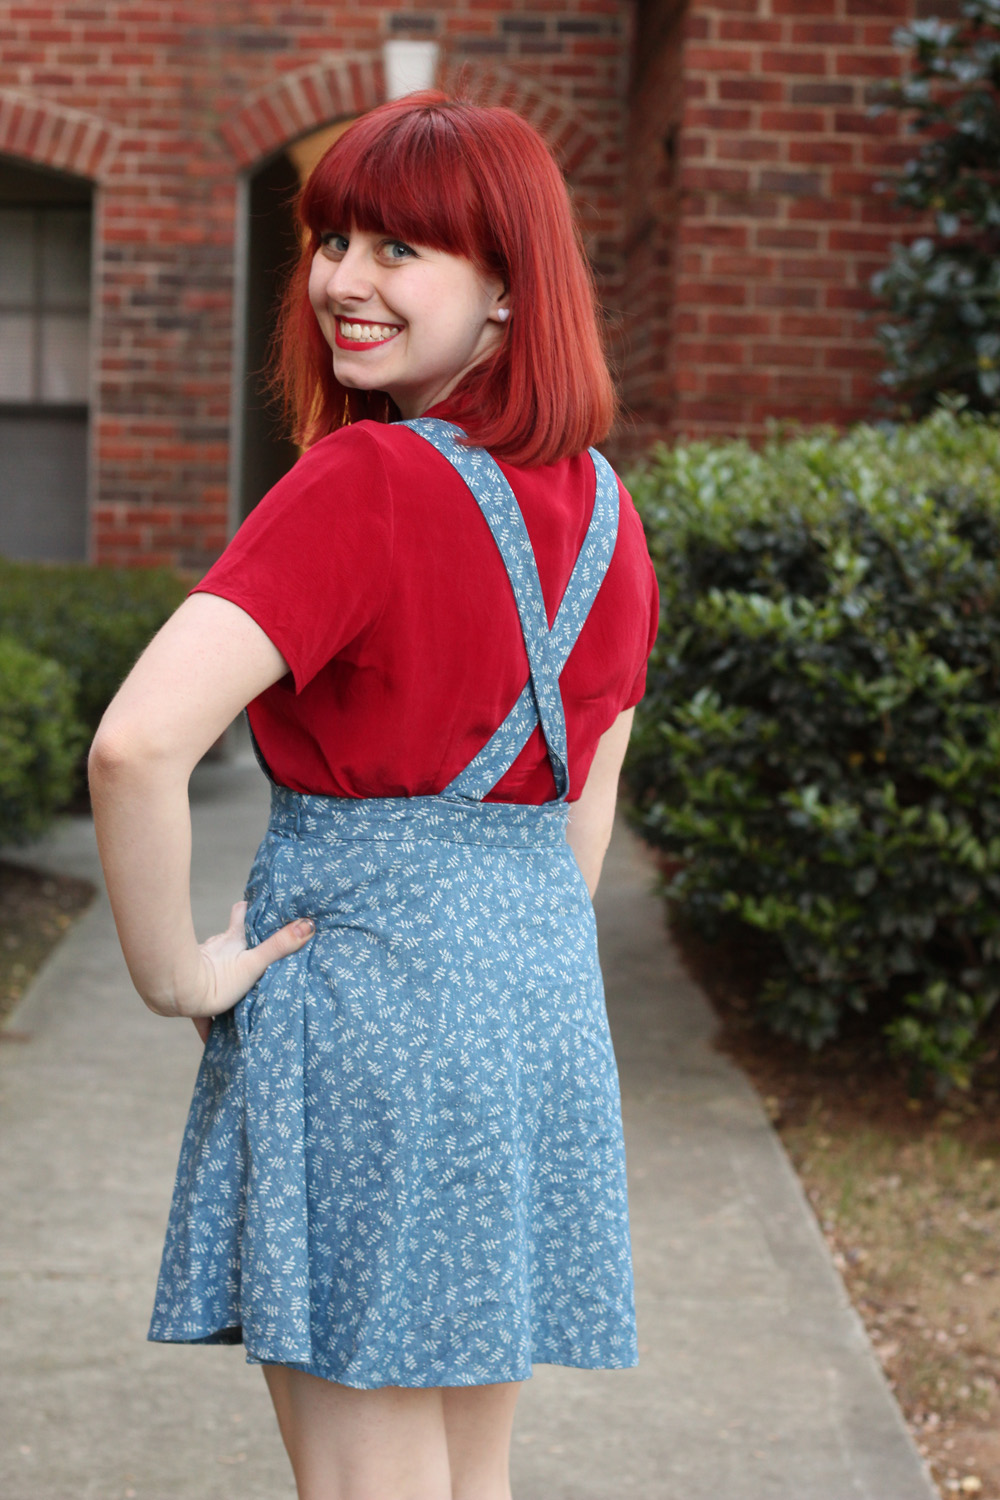 Crisscross Back Denim Overall Dress with a Red Silk Shirt